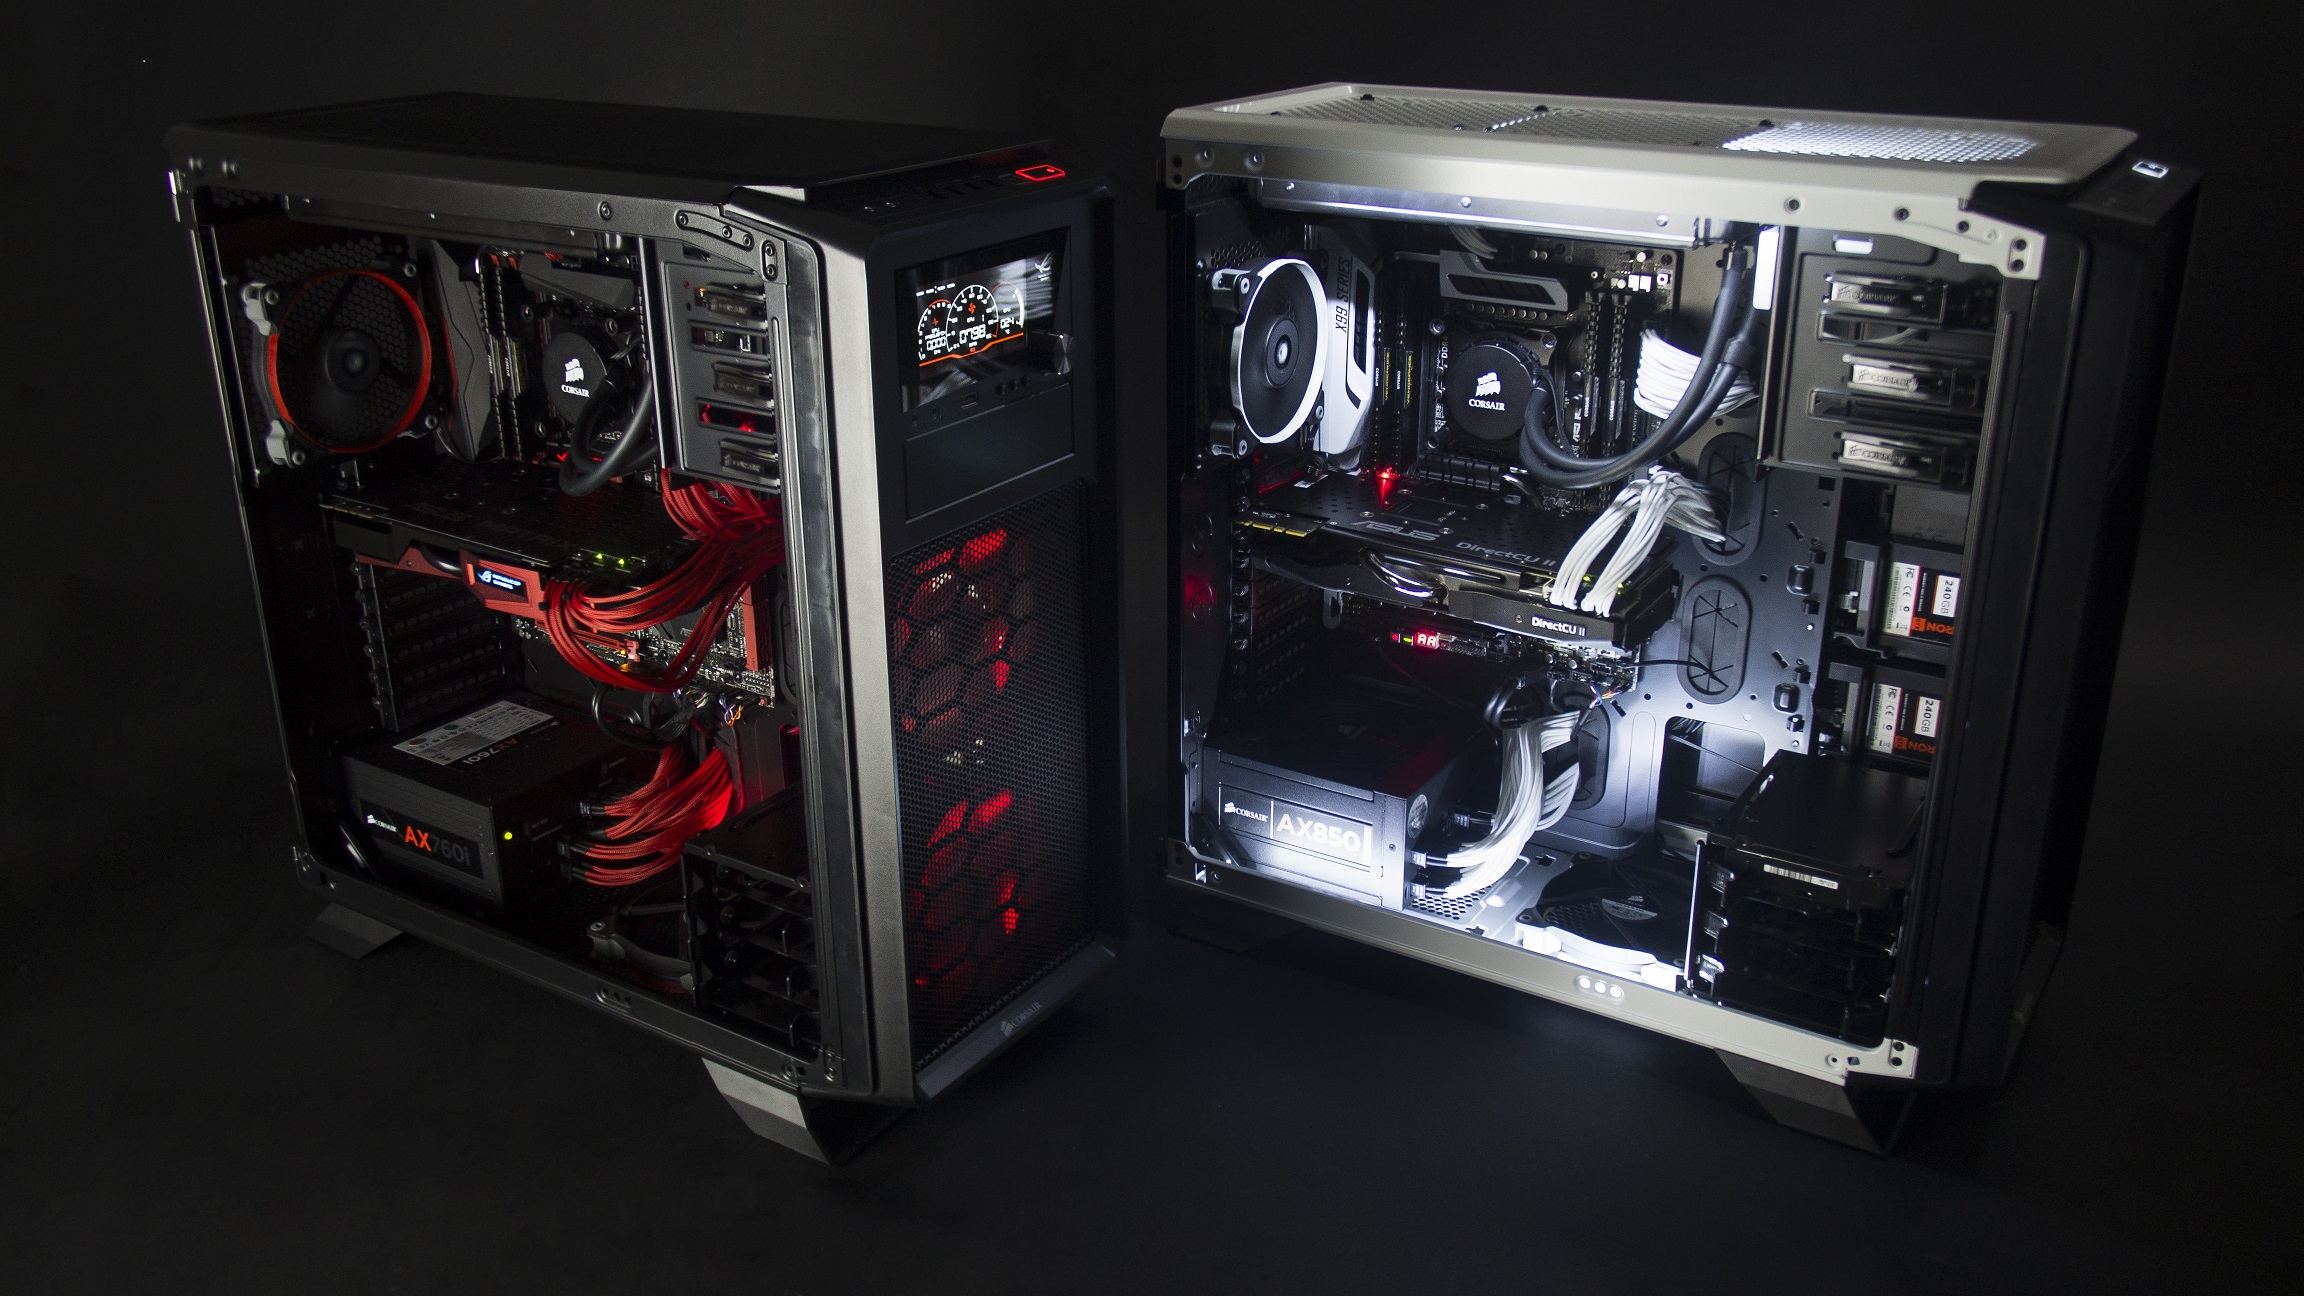 X99 Gaming Pc Build Recommendations Edge Up Motherboard Intel Msi X99a Pro Carbon New